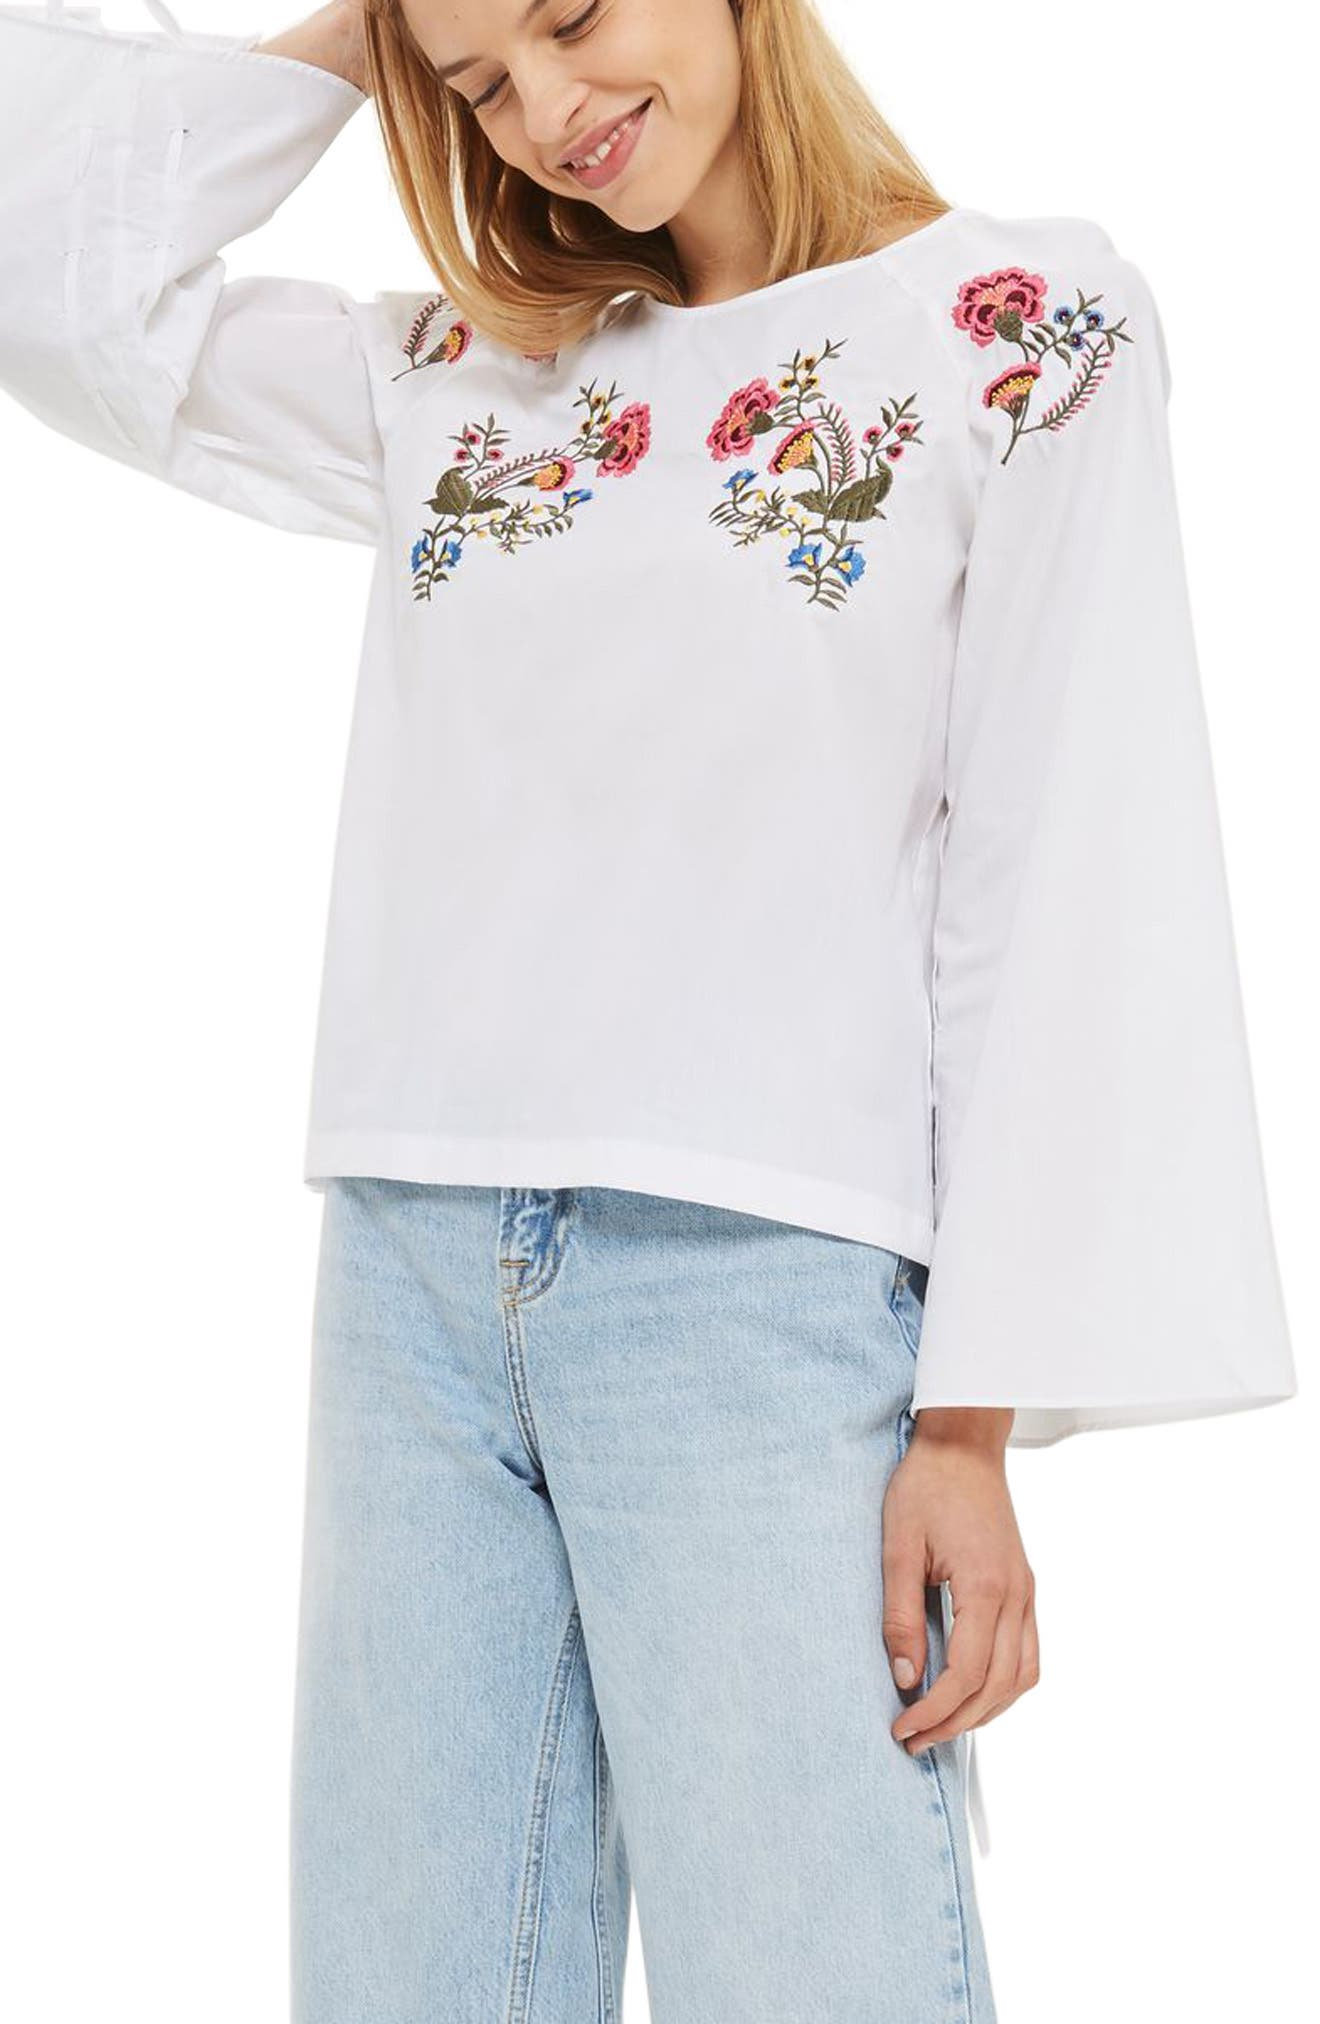 Topshop Rosemary Floral Embroidered Top